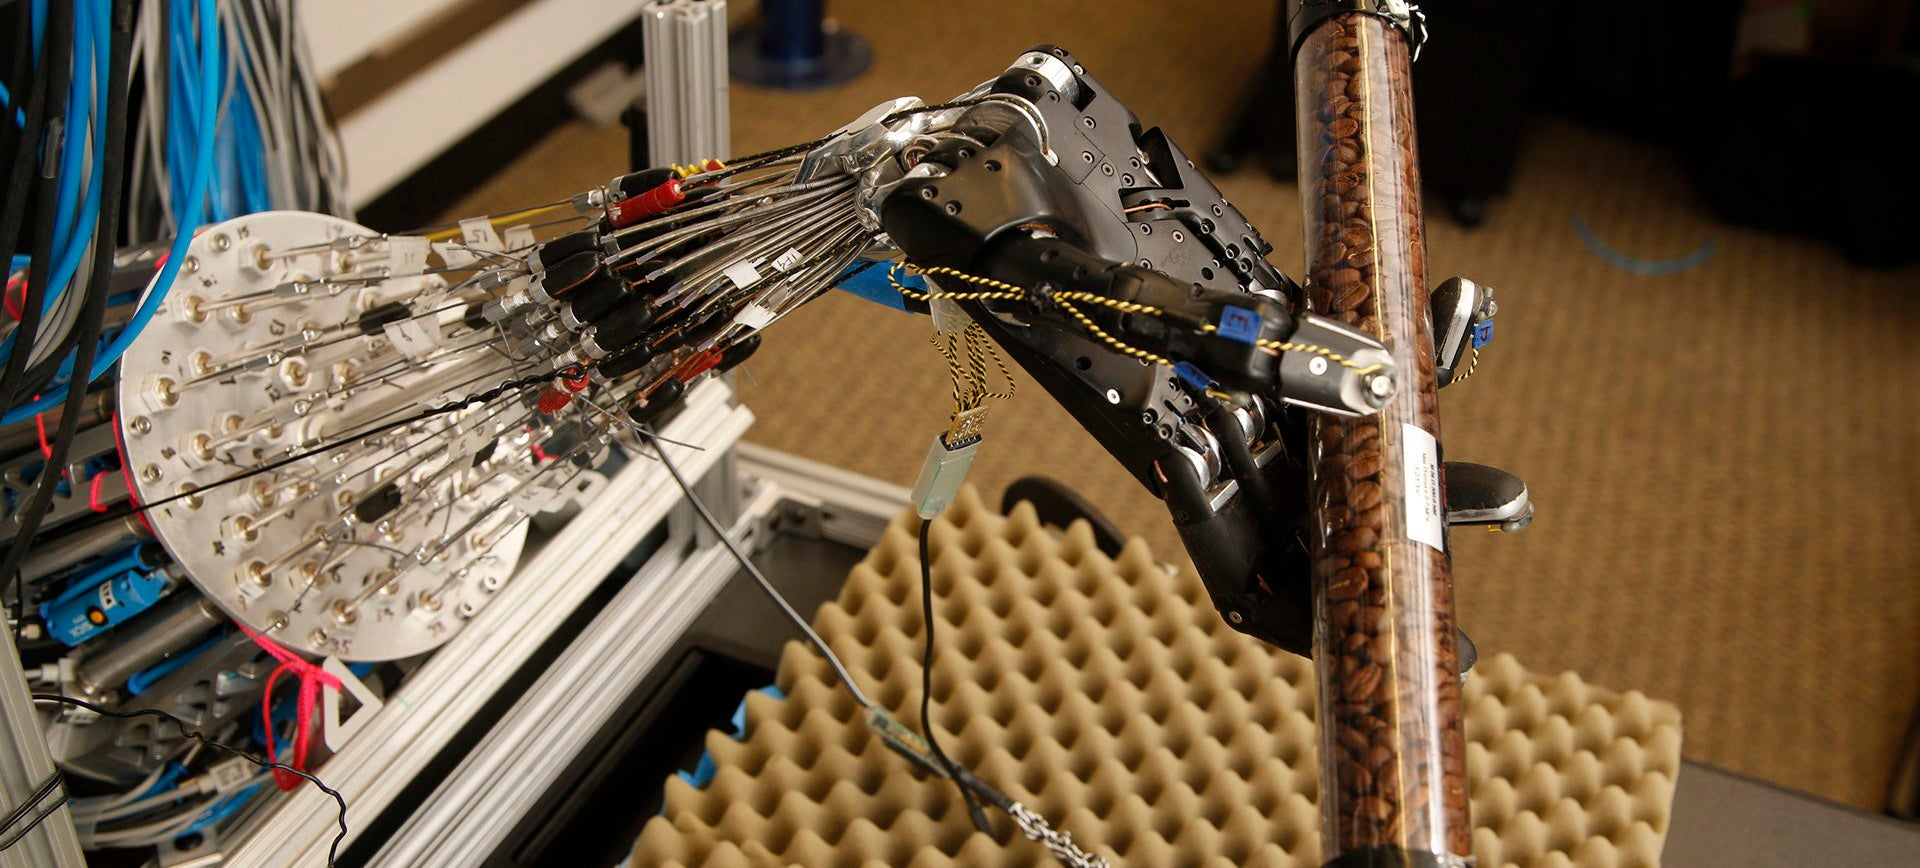 This Robot's Teaching Itself to Twirl a Stick